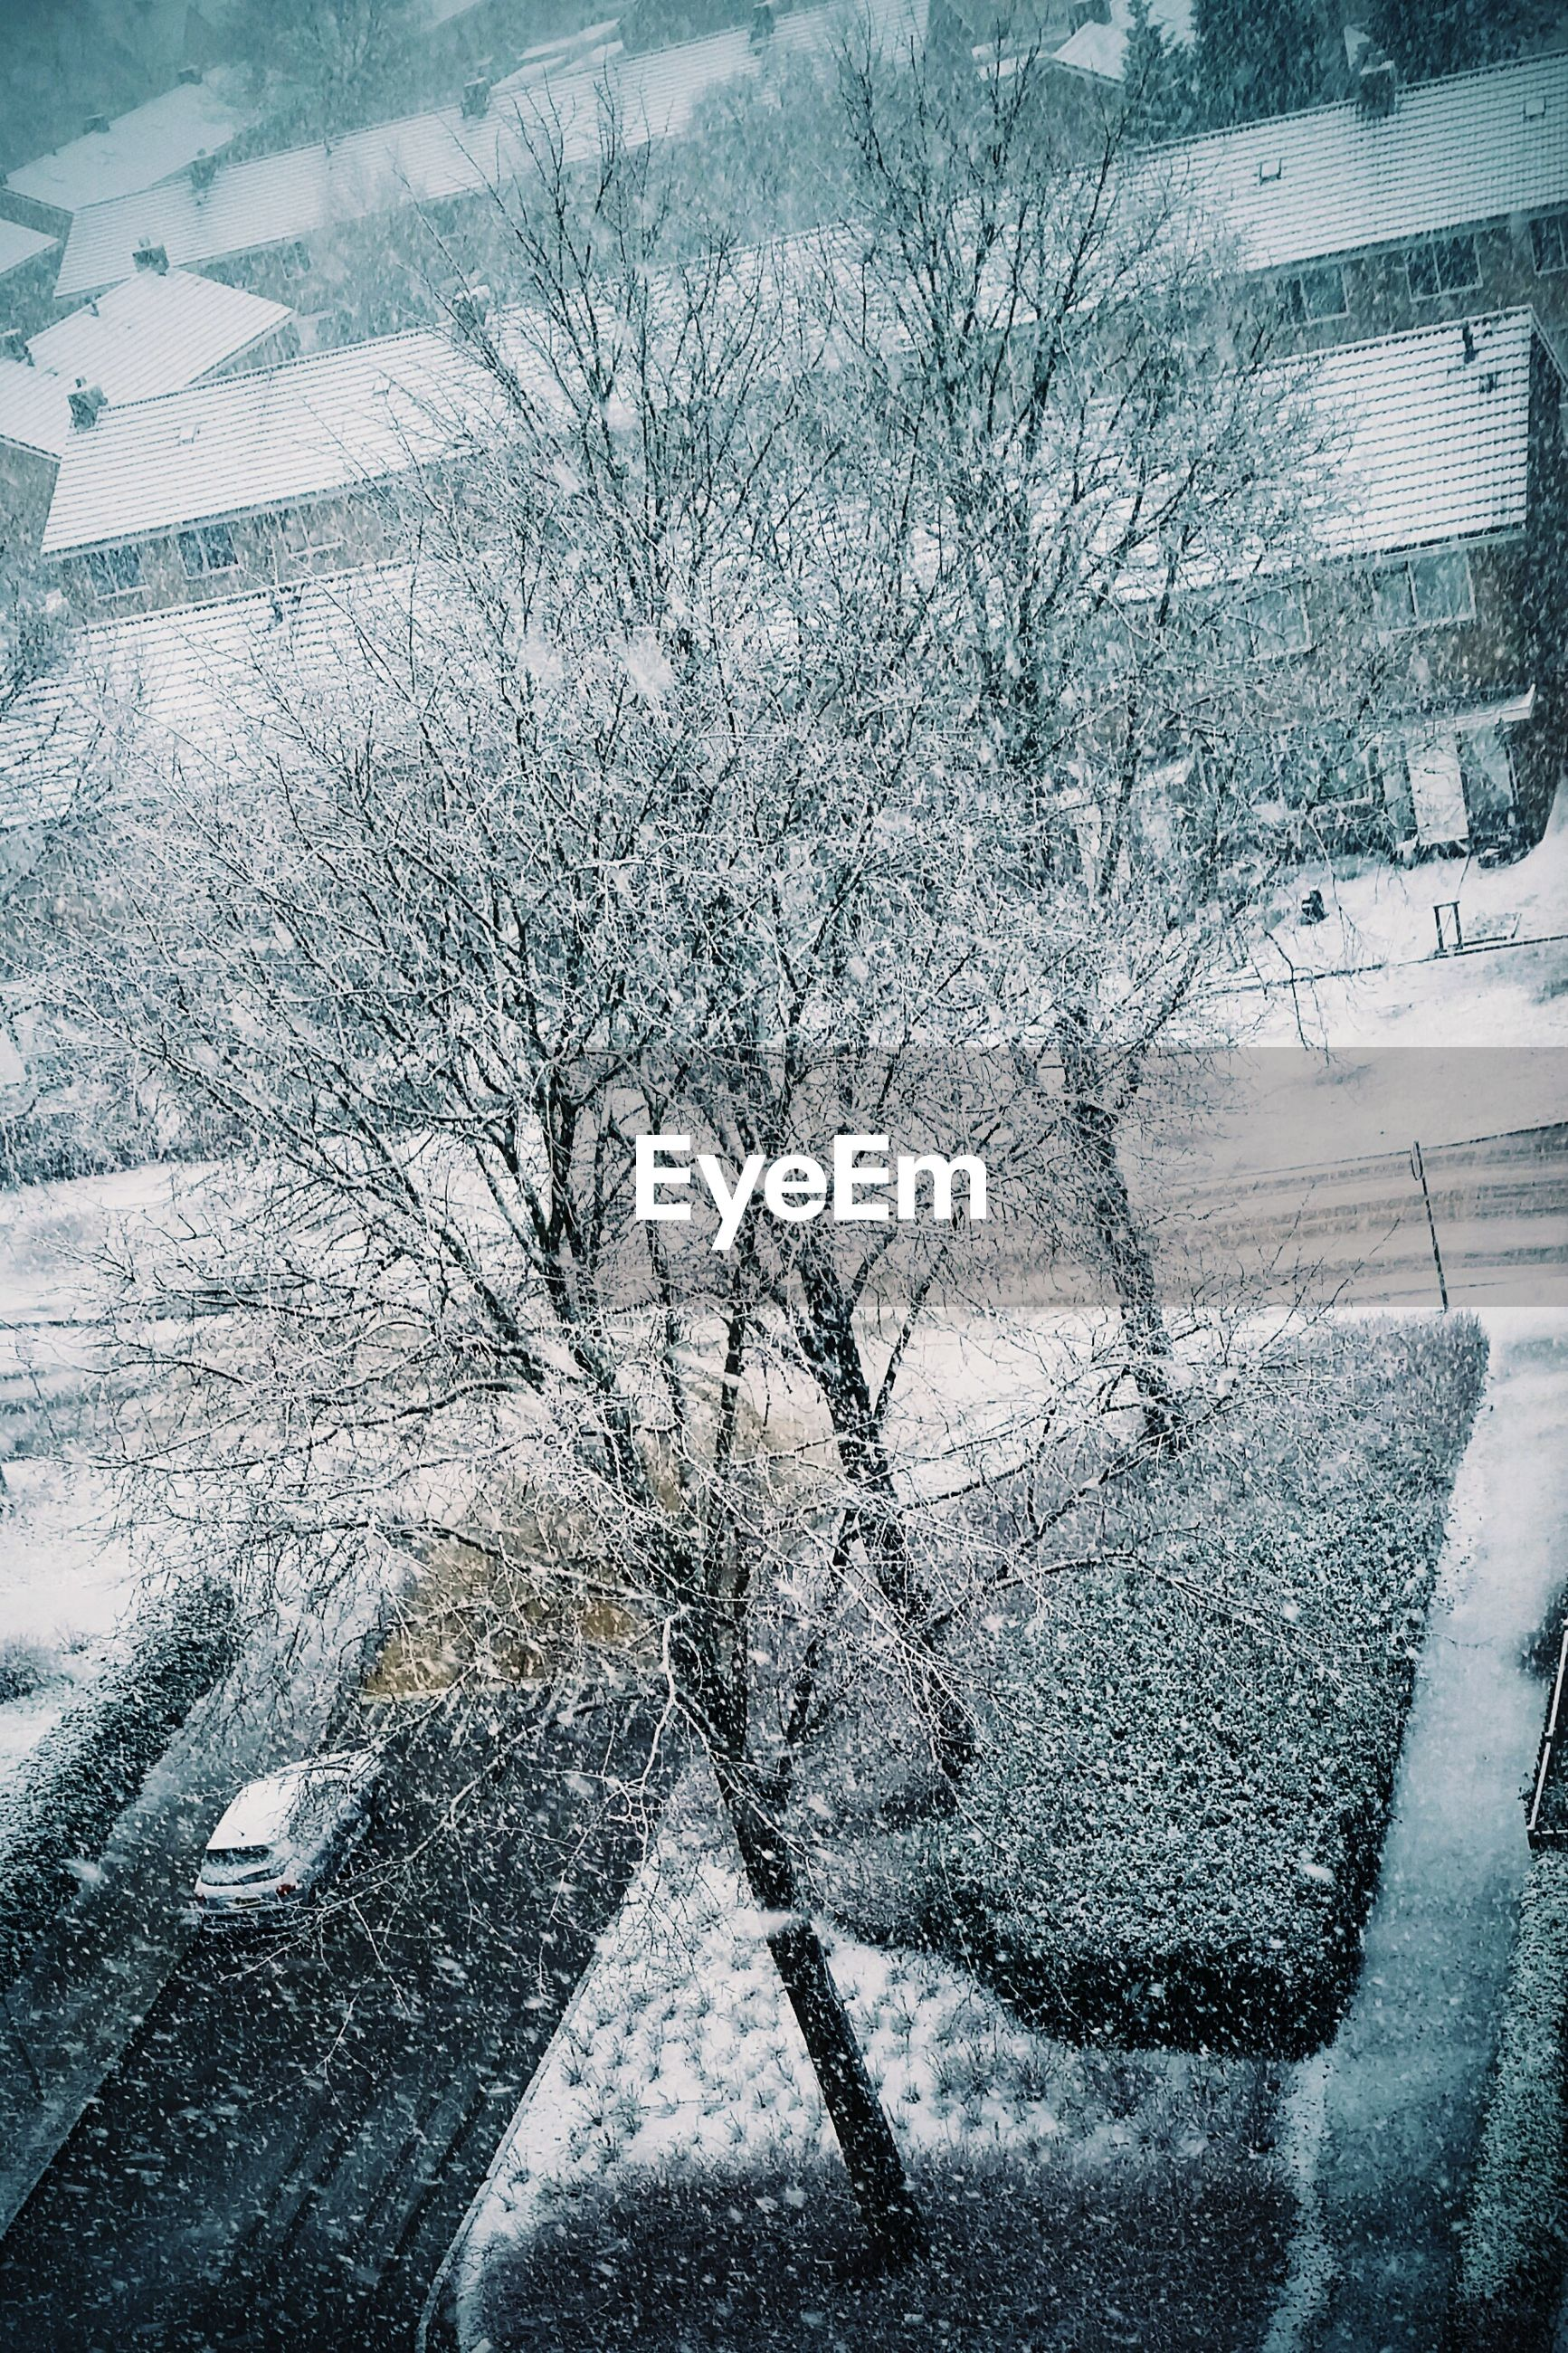 Snow Day ❄ Relaxing Taking Photos Check This Out Hanging Out Hello World Taking Photos EyeEm Best Shots Walking Around Streetphotography